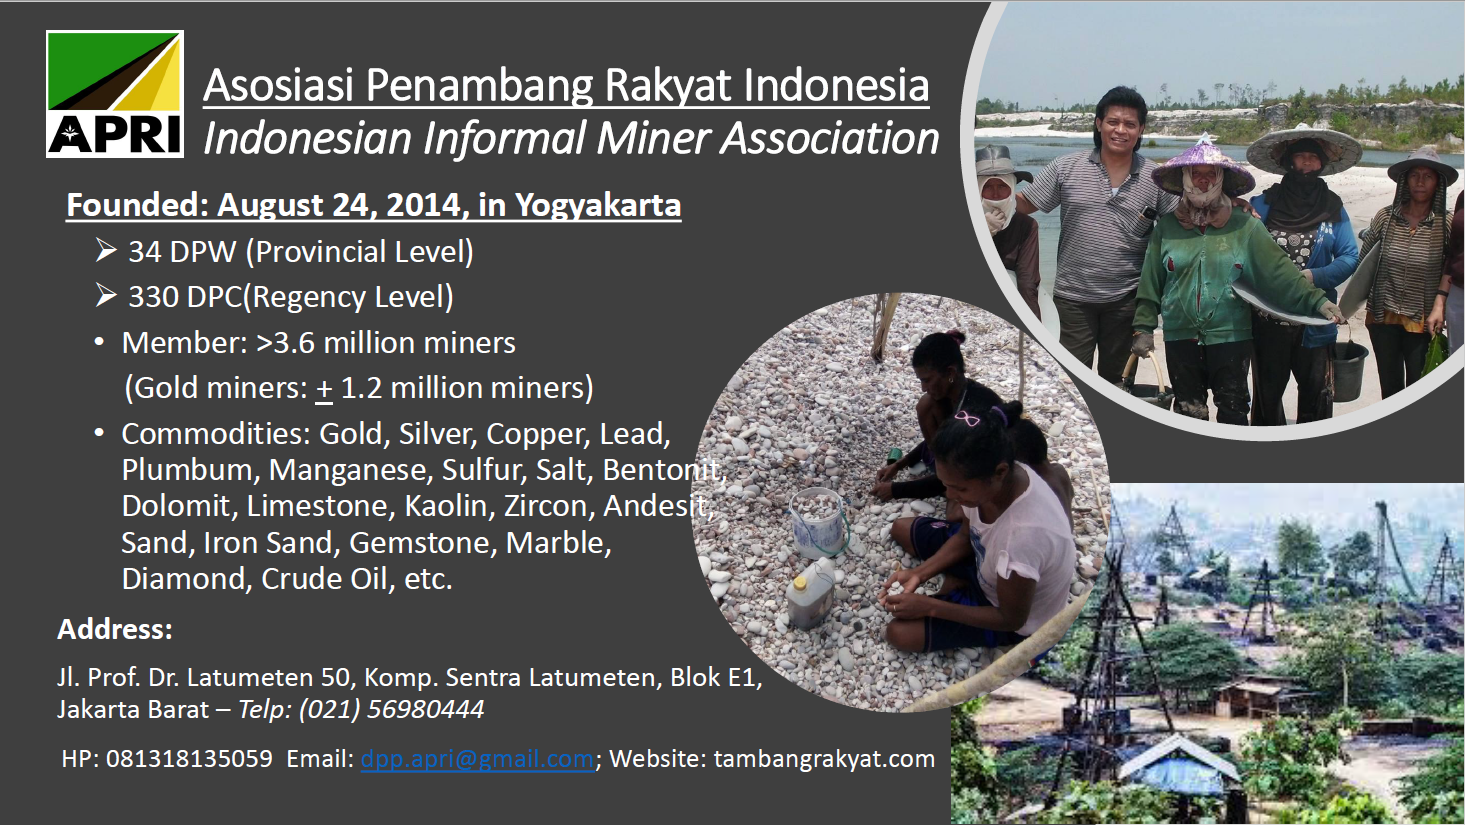 First page of Artisanal and Small-Scale Gold Mining (ASGM) in Indonesia